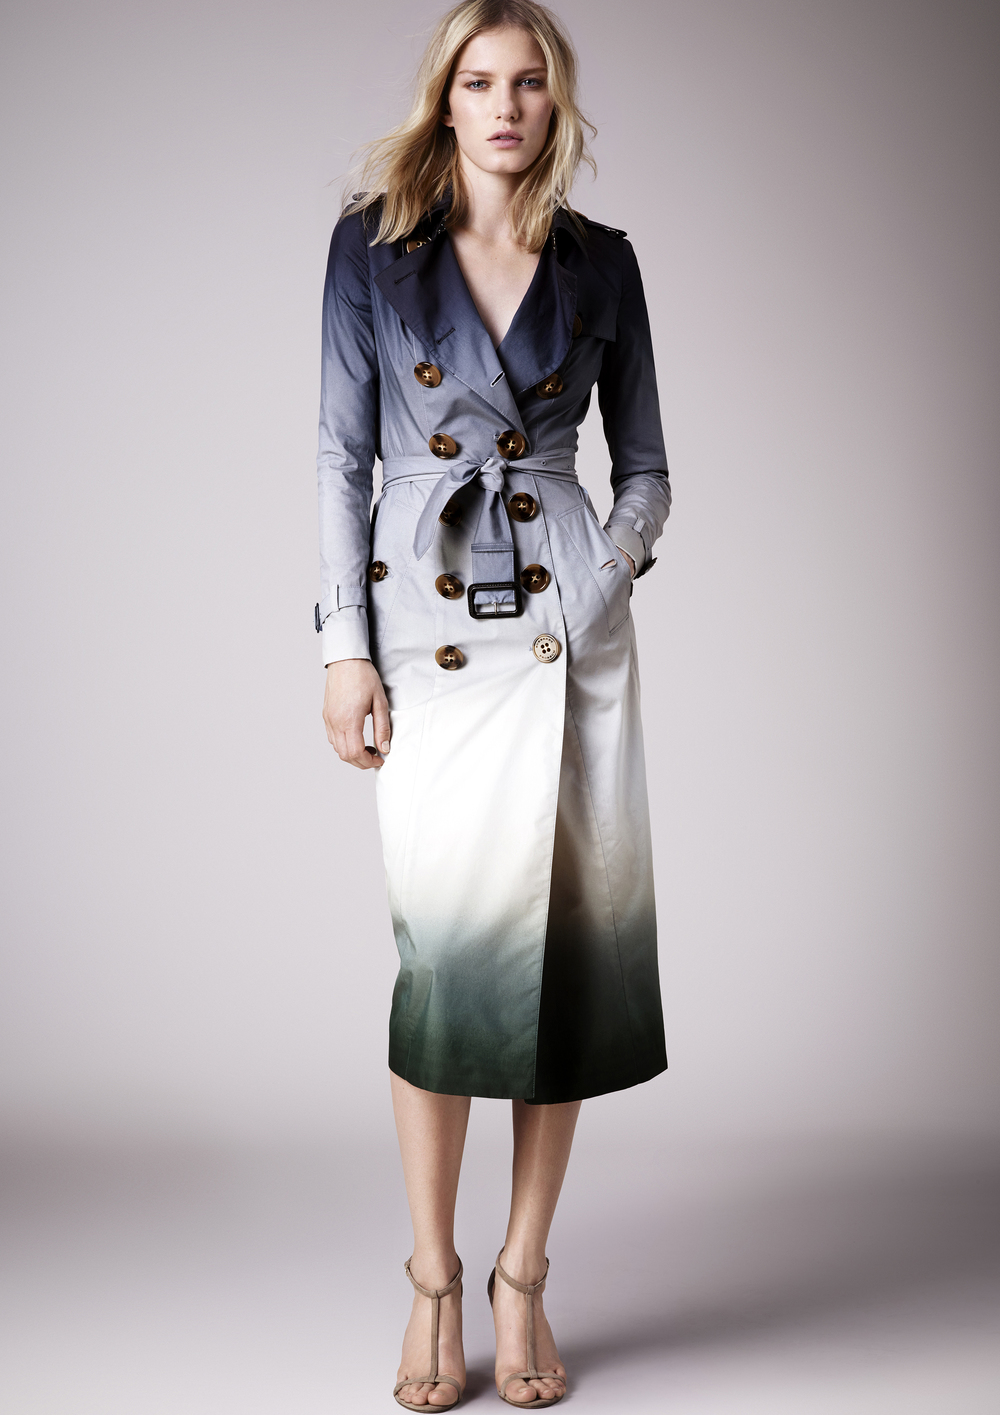 Burberry Prorsum Womenswear Spring_Summer 2015 Pre-Collection.jpg